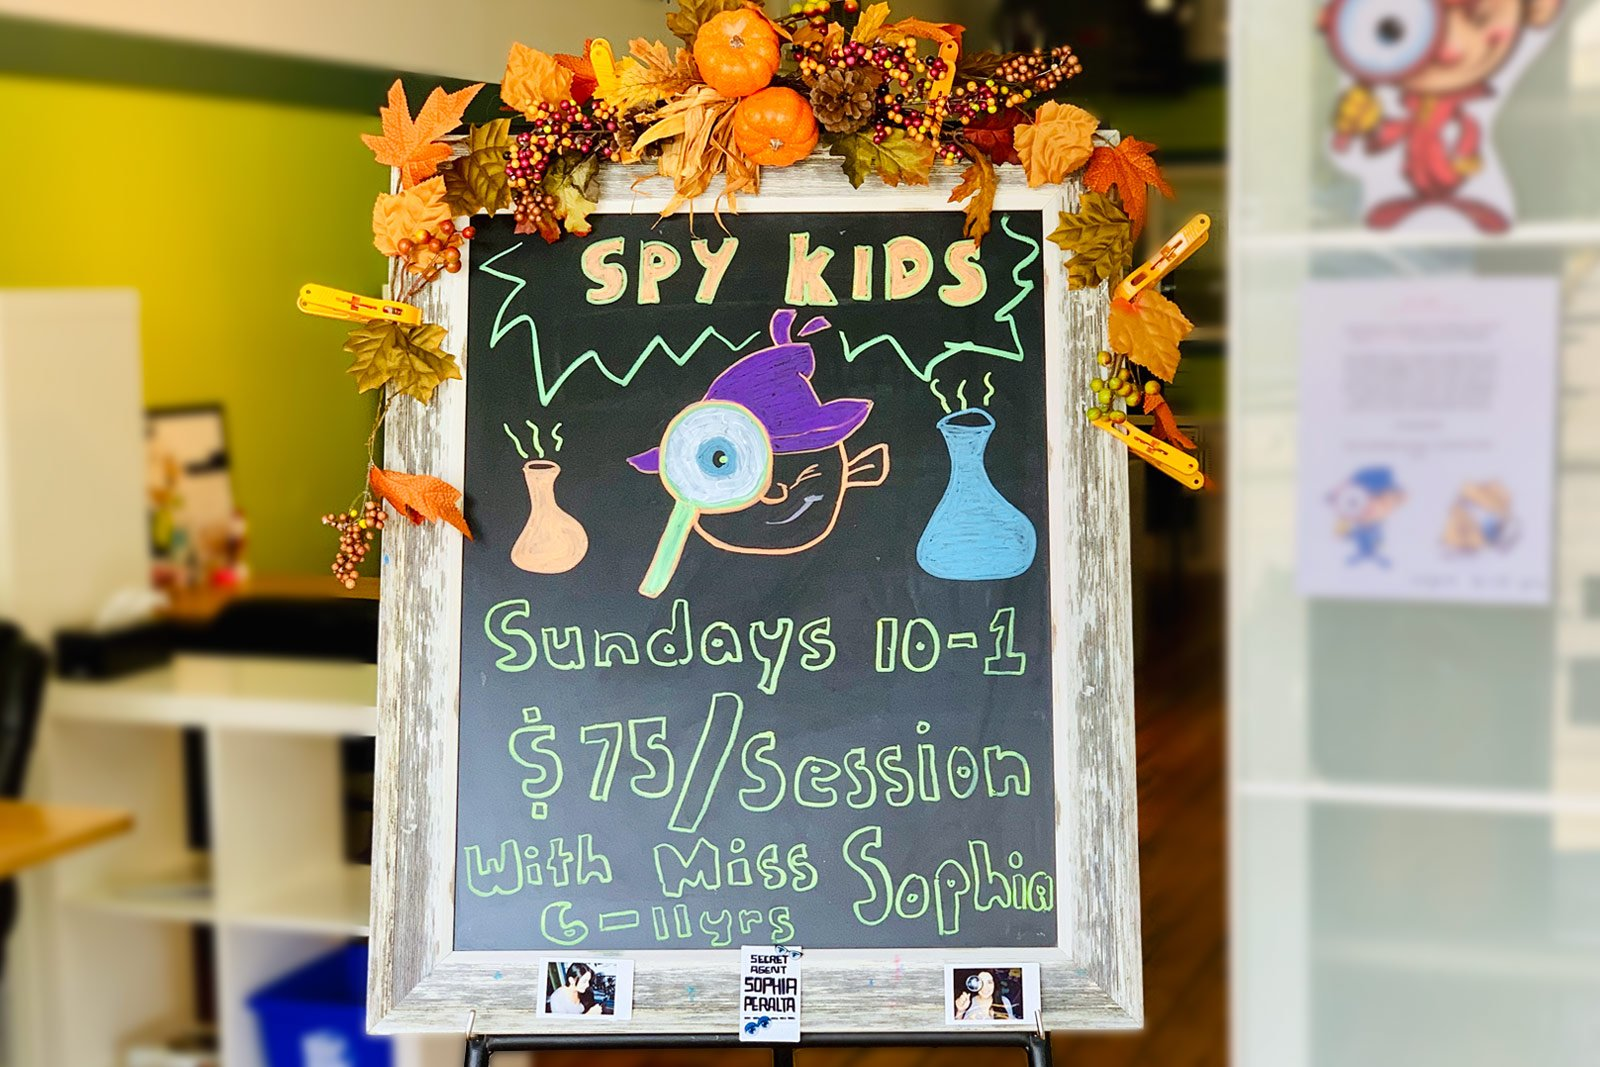 Recruiting Spy Kids Now – Sunday Camp